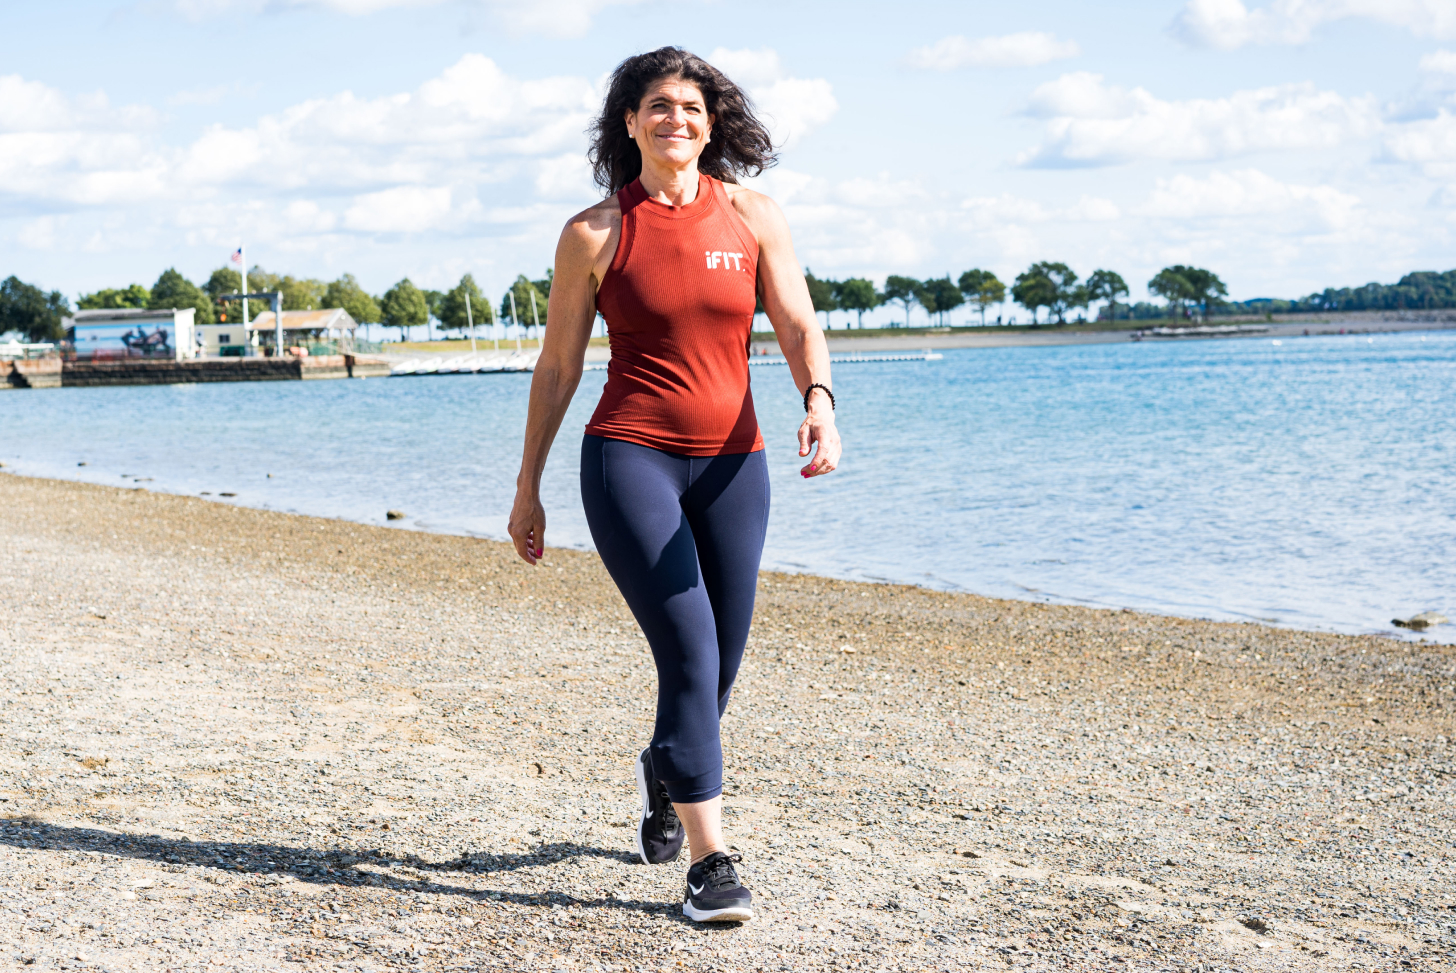 iFIT Guide Dr. Eva Selhub coaches a walking workout on the beach